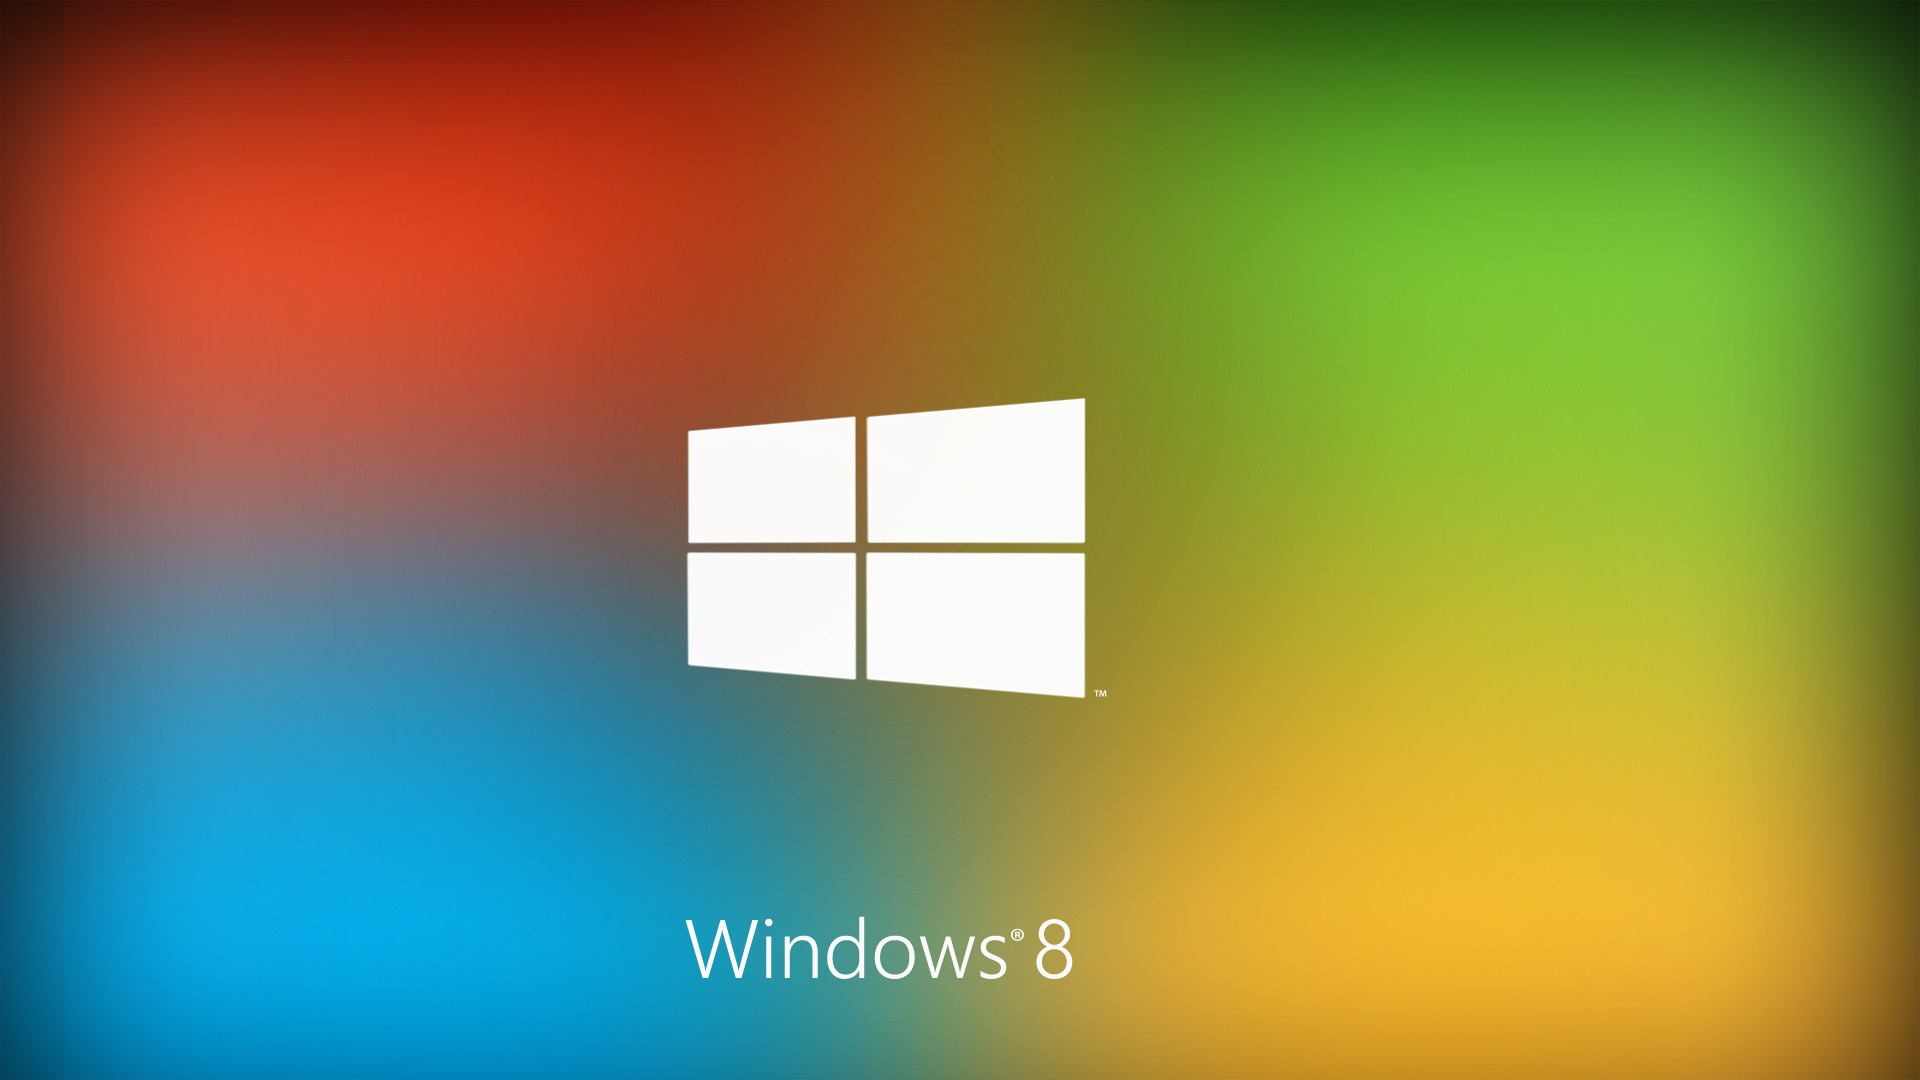 Come reinstallare Windows 8 in pochi passi